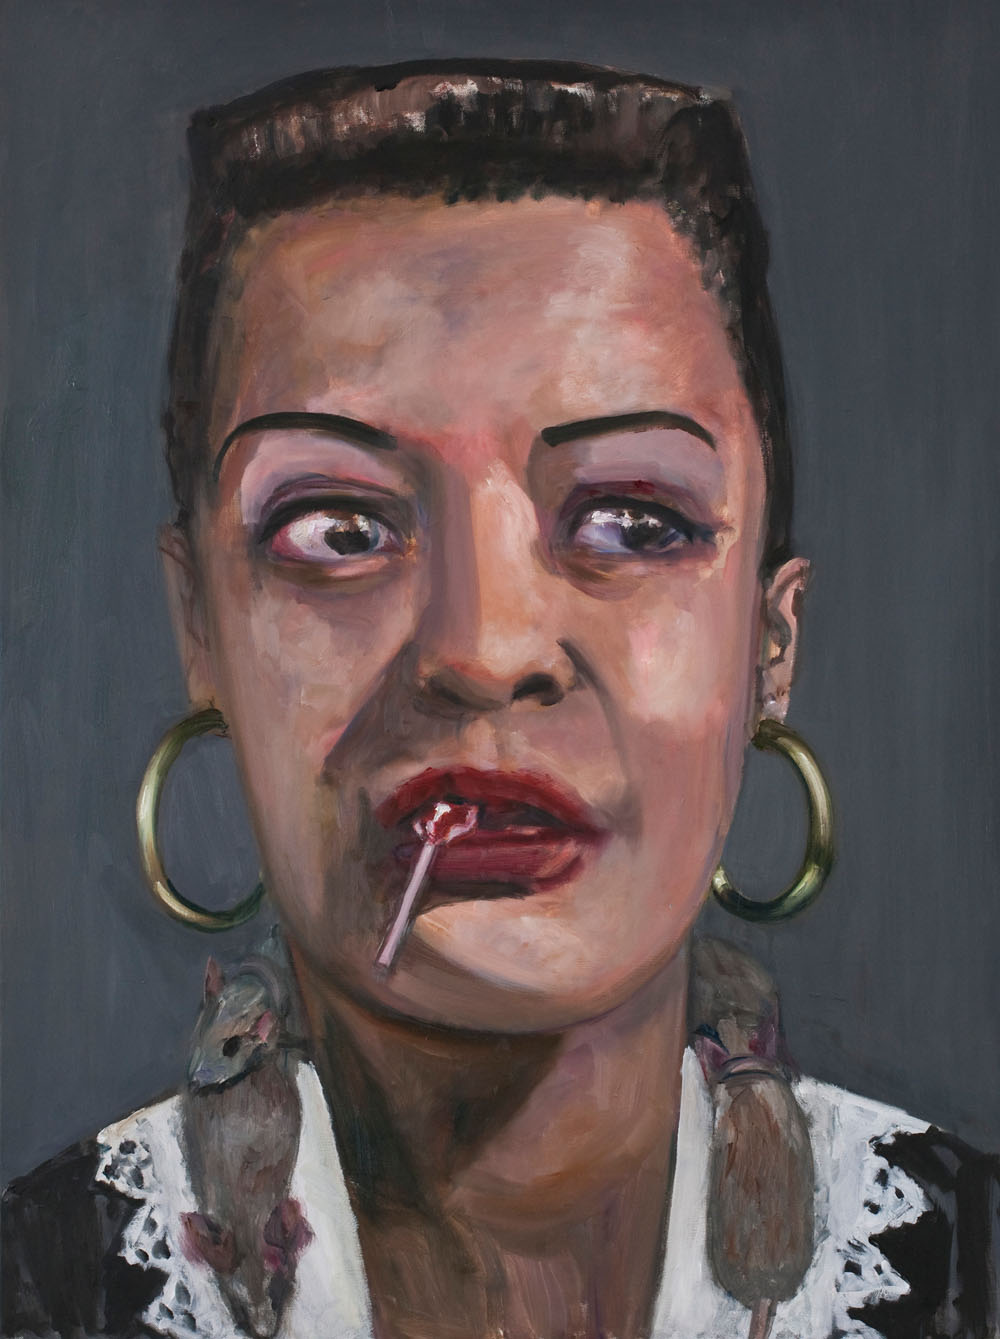 Malerei, böse: Dawn Mellor Head of National and International Strategies (Billie Holiday), 2013 Öl auf Leinwand / Oil on canvas 102 x 76 cm (c) courtesy of the artist